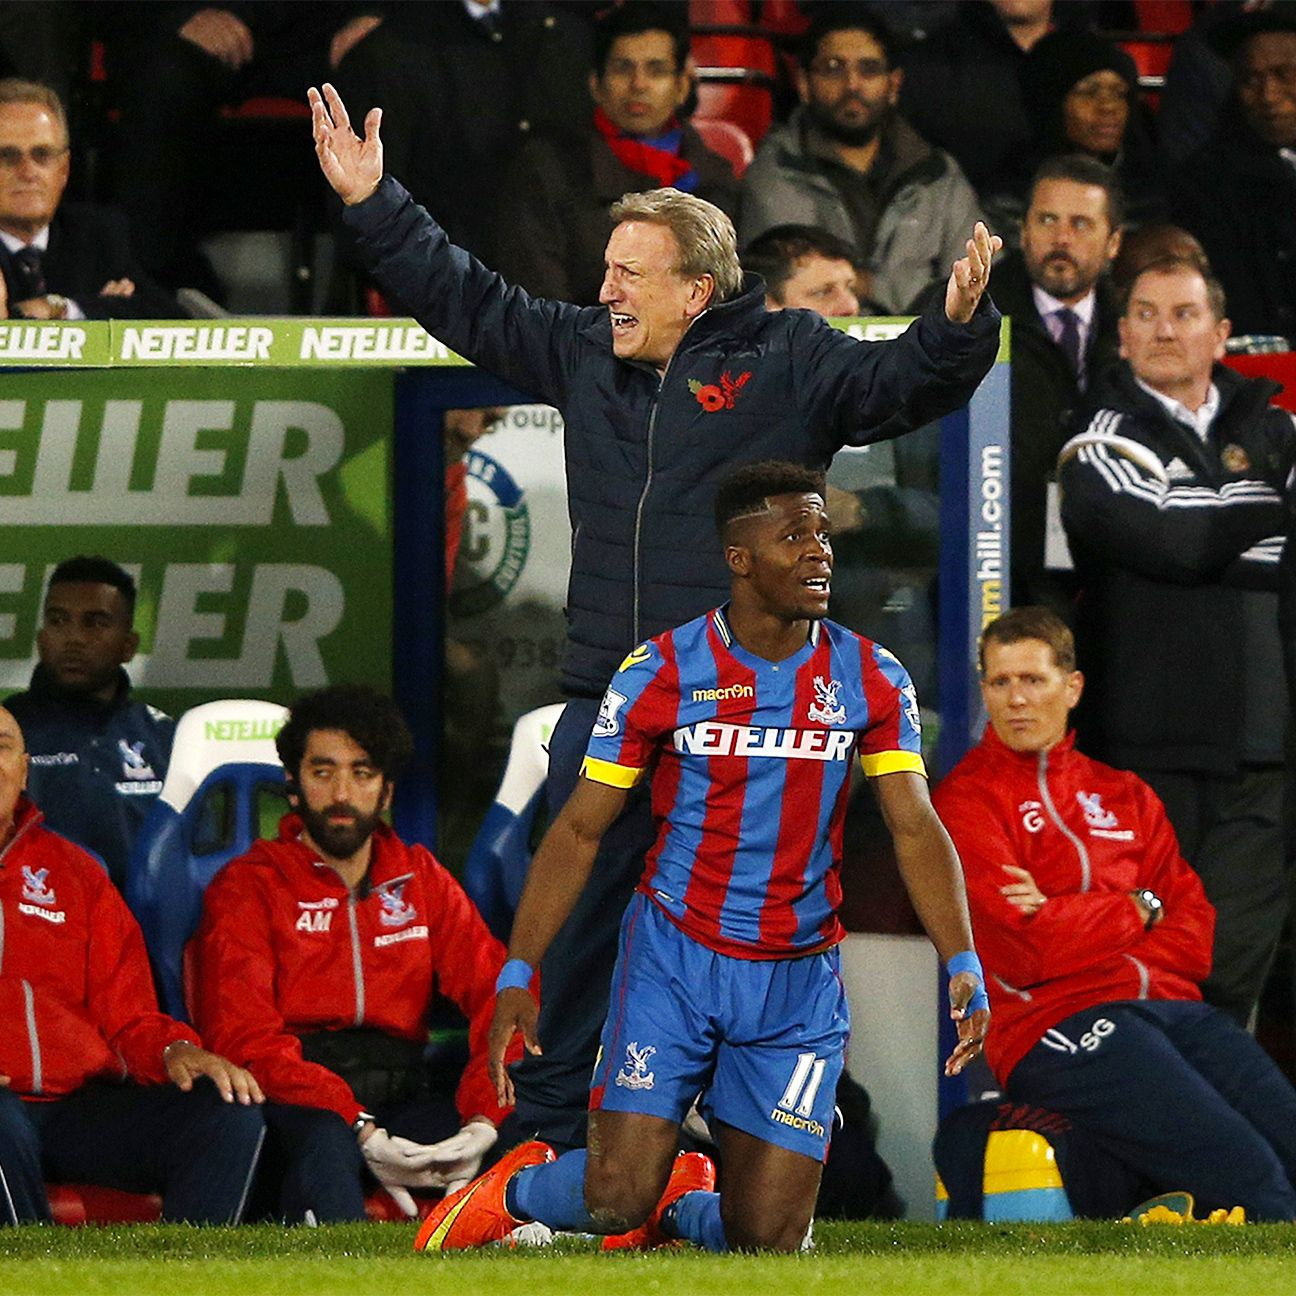 There is plenty of angst being felt at Crystal Palace following Monday's home defeat to Sunderland.